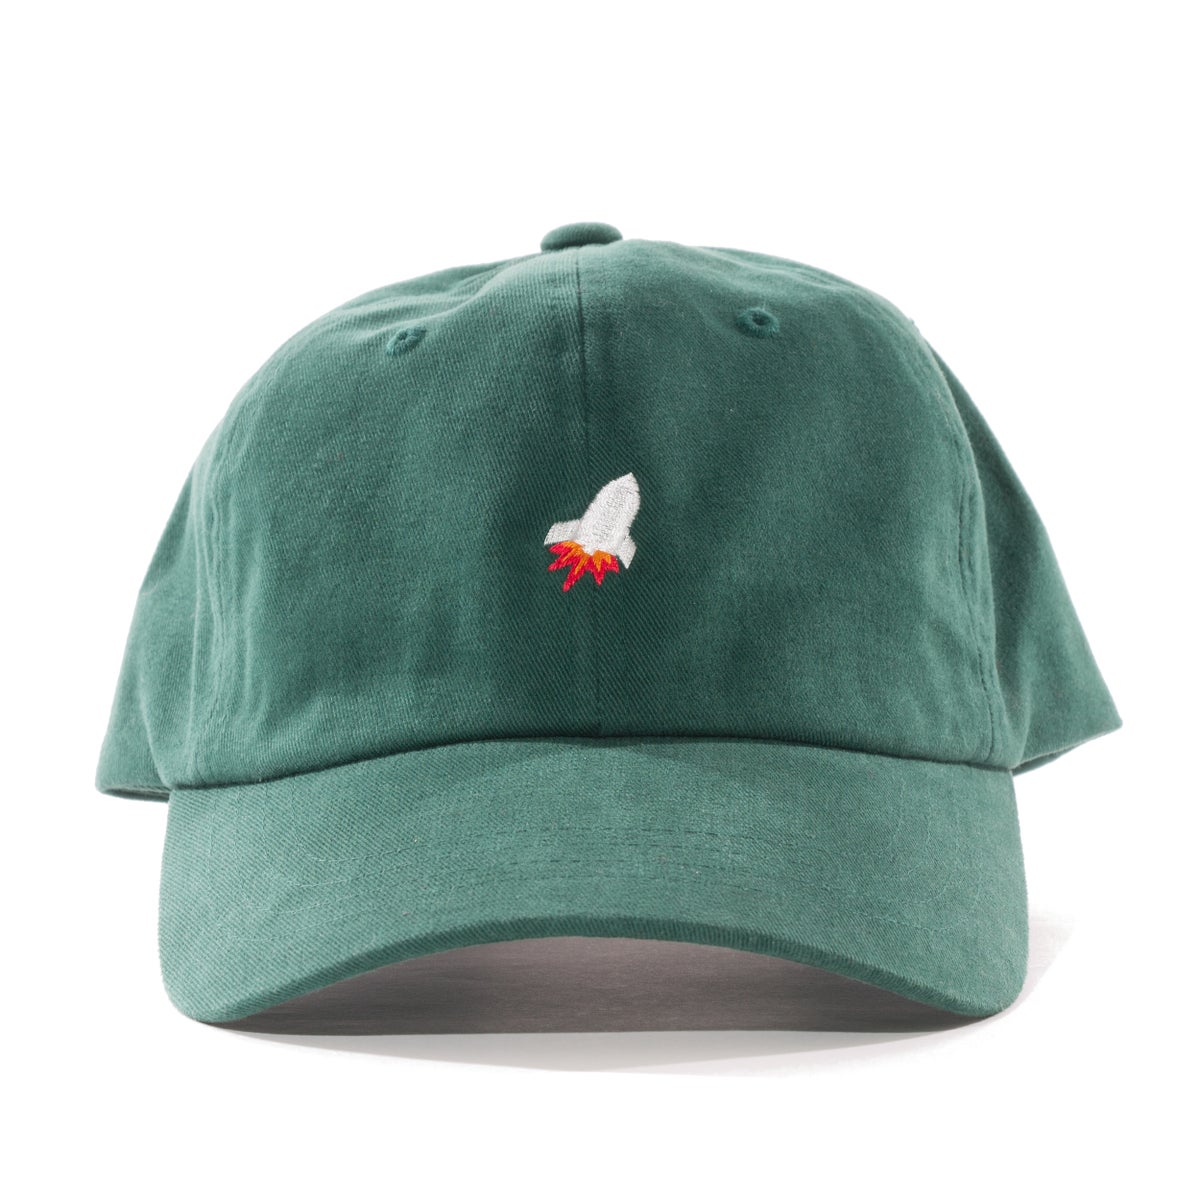 Image of Rocket Strapback Cap (Forest)